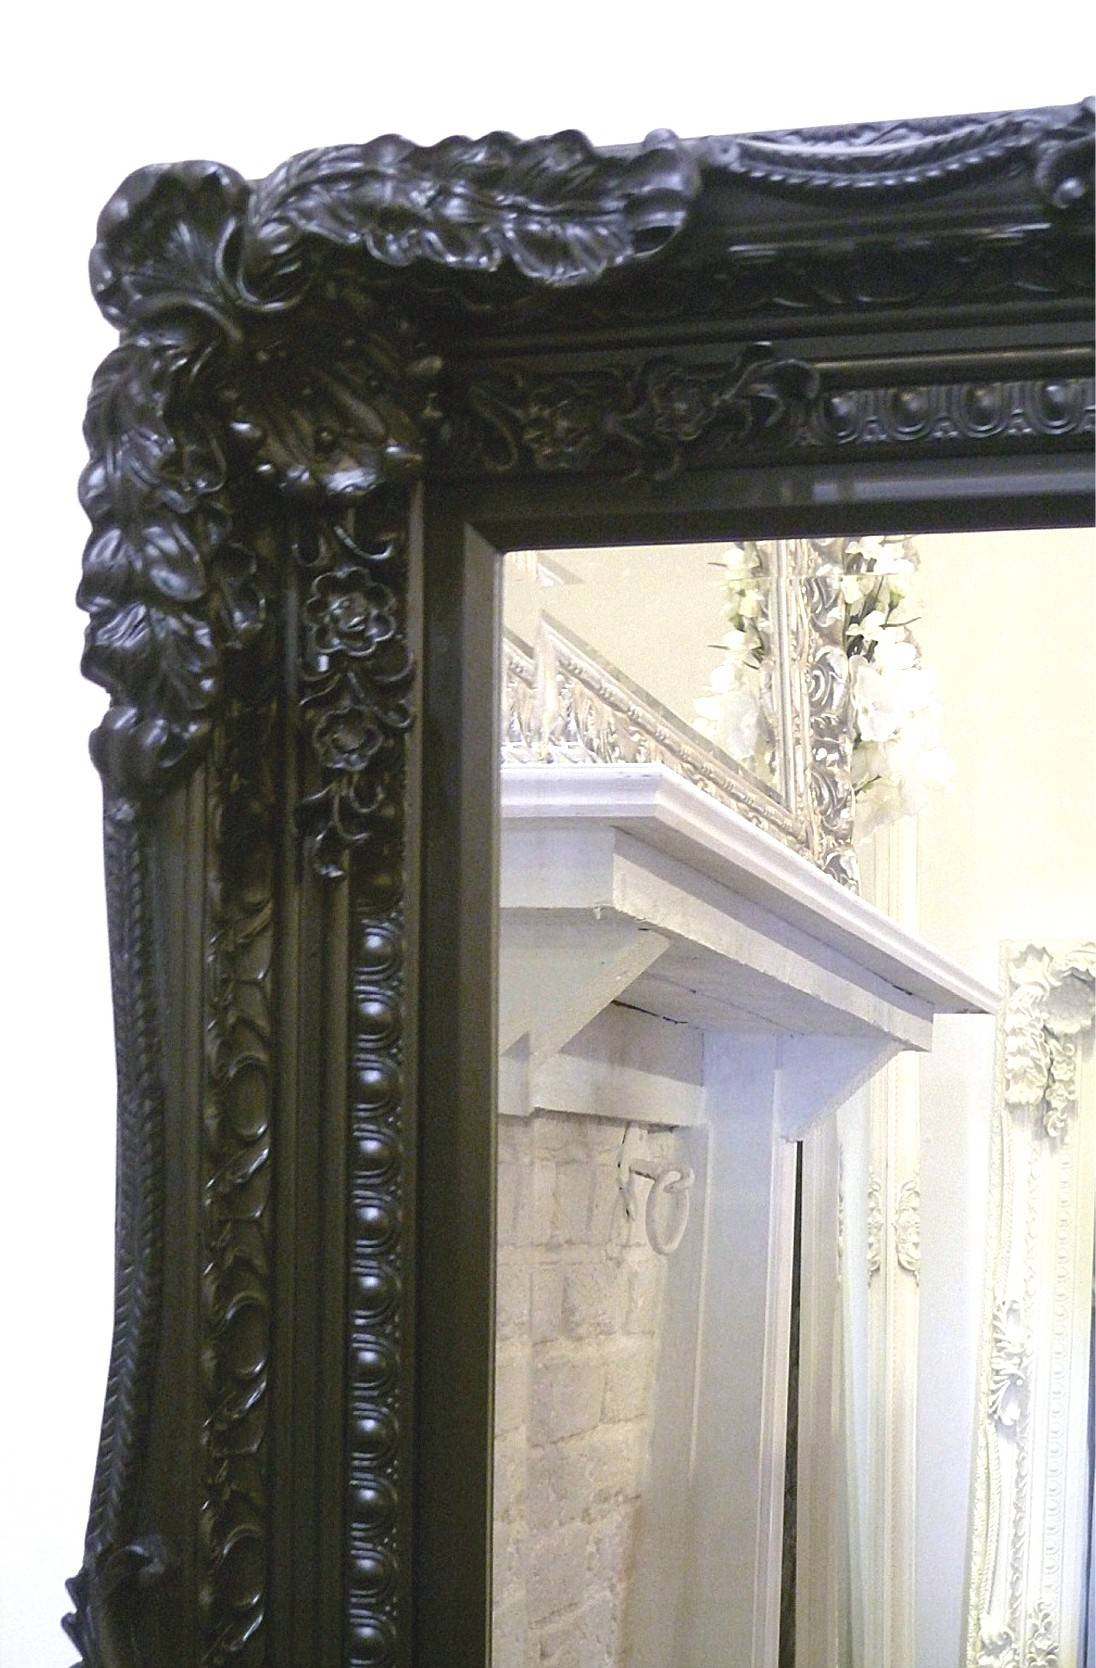 The Best Value Black Chelsea Ornate Mirrors Online. with Black Ornate Mirrors (Image 12 of 15)